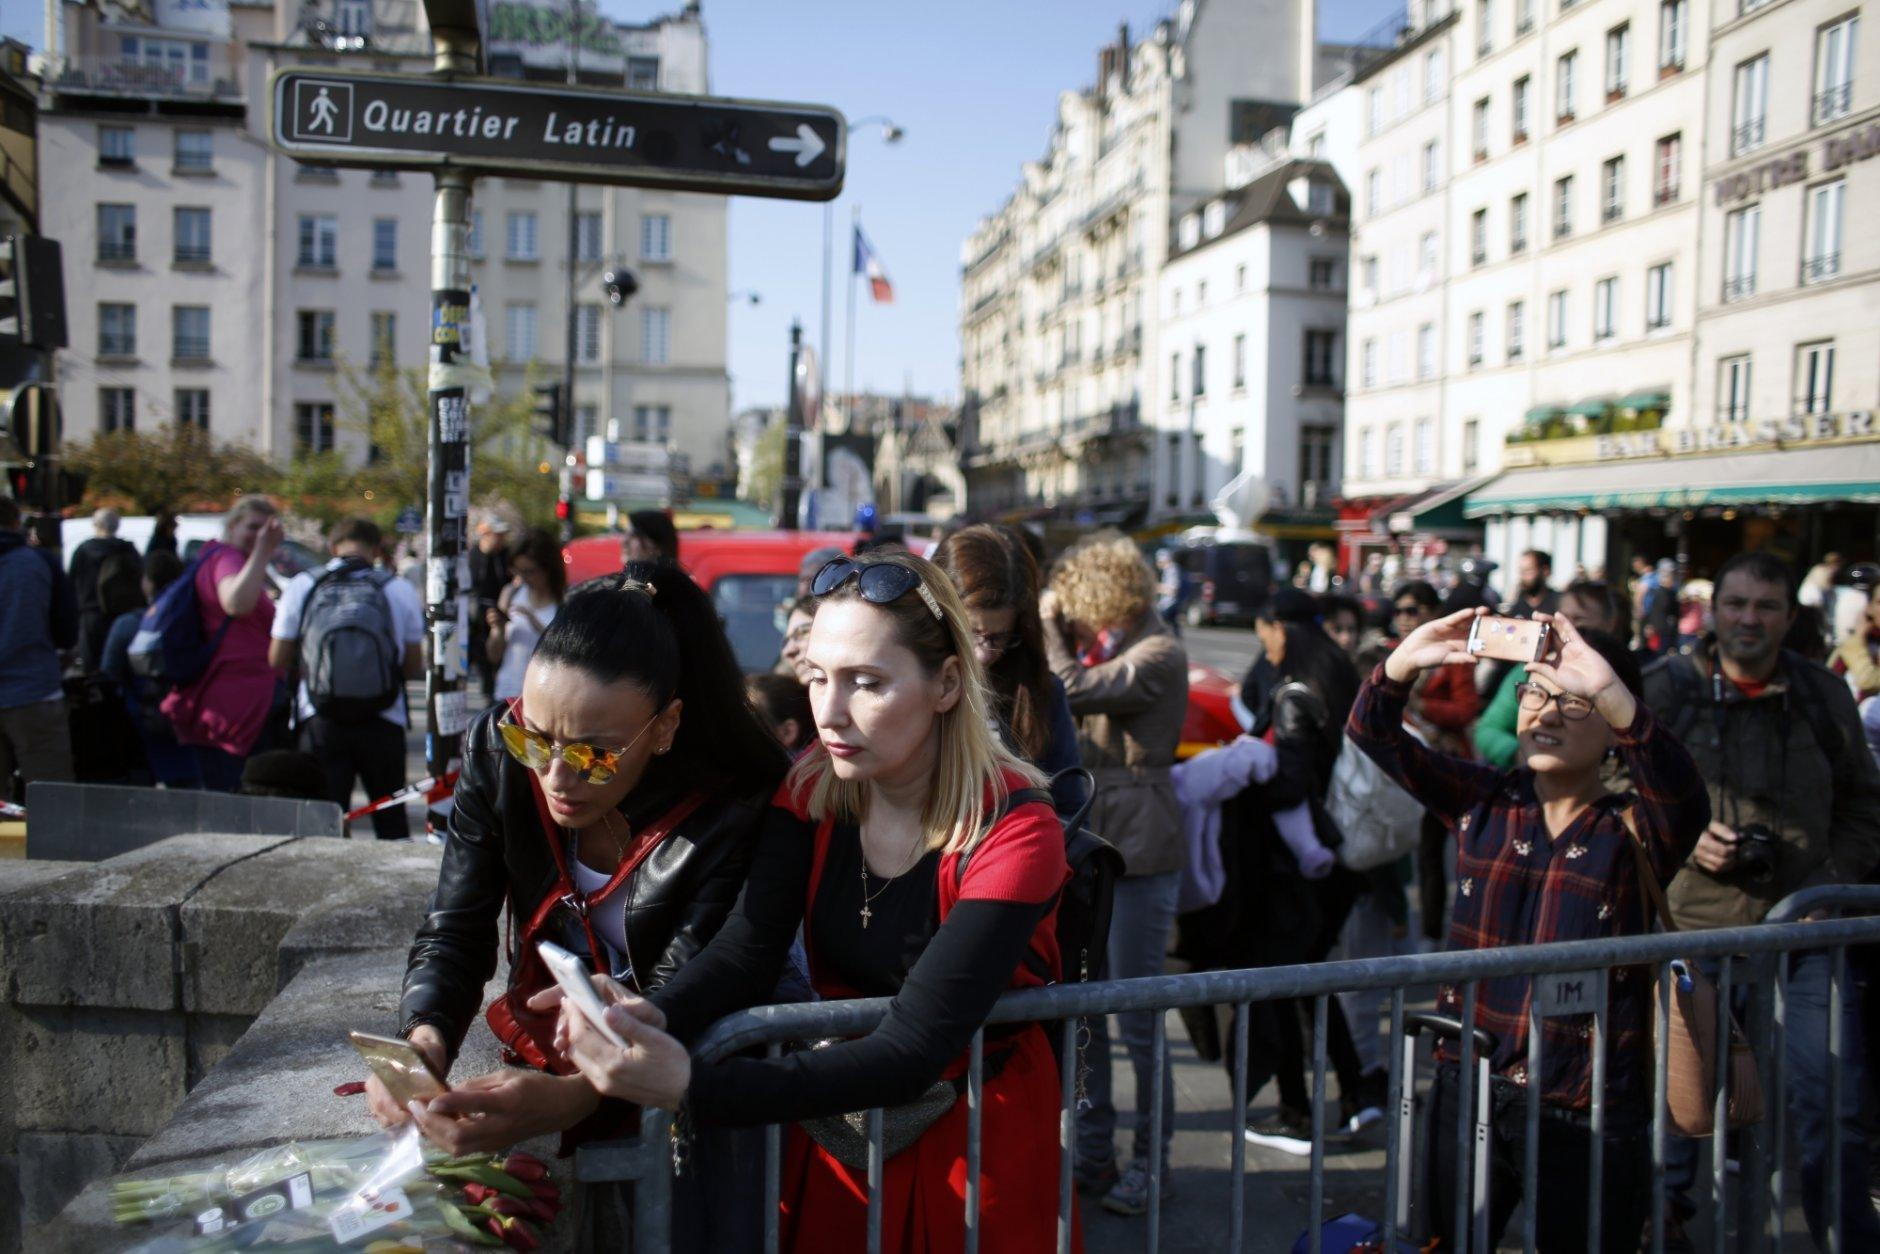 People take snapshot of flowers in front of Notre Dame cathedral, in Paris, Friday, April 19, 2019. Rebuilding Notre Dame, the 800-year-old Paris cathedral devastated by fire this week, will cost billions of dollars as architects, historians and artisans work to preserve the medieval landmark. (AP Photo/Thibault Camus)